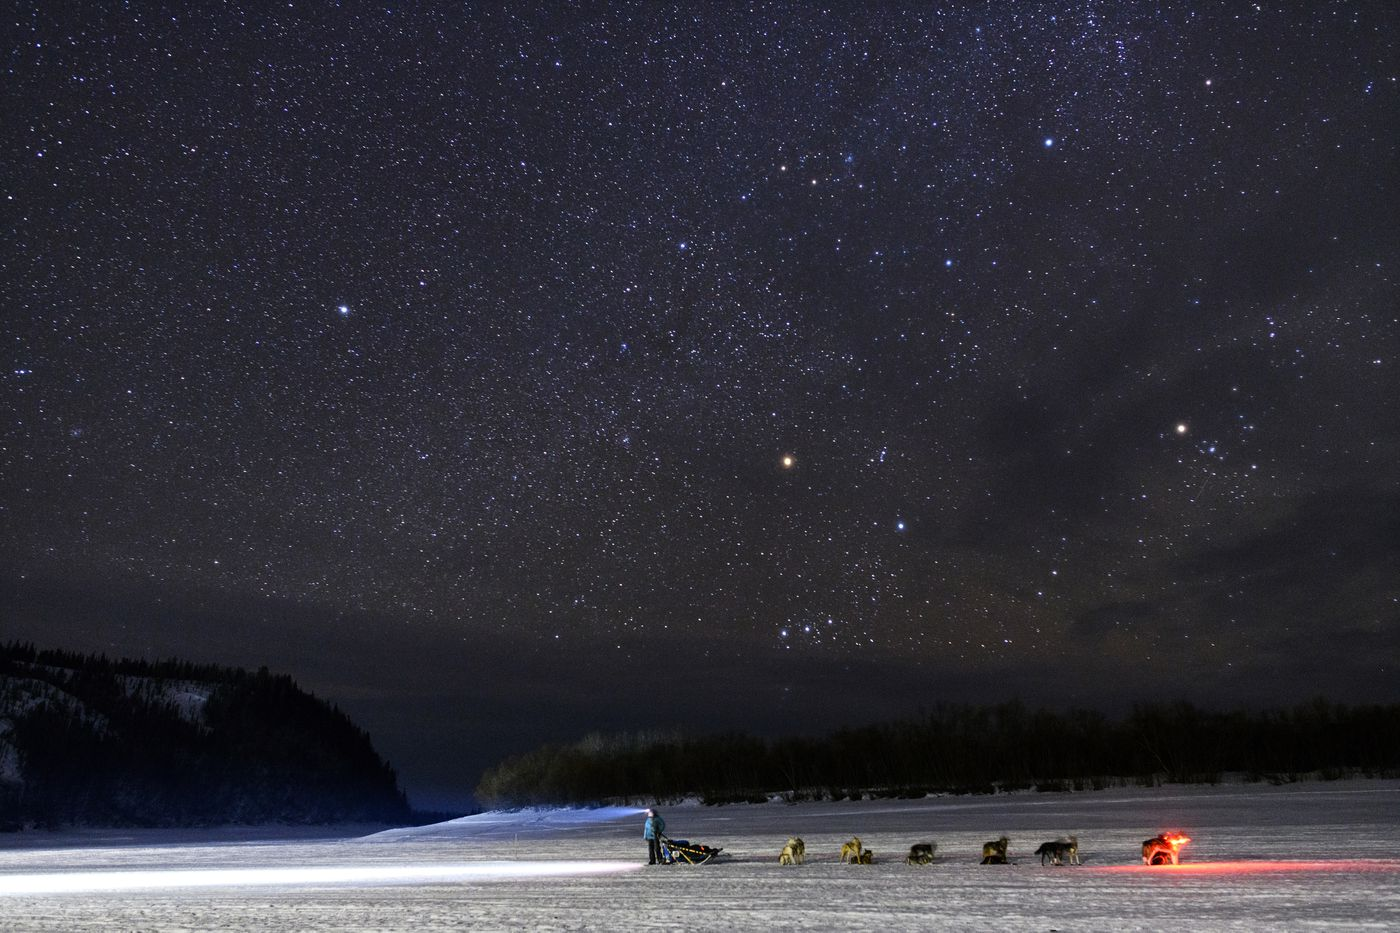 Kristy Berington waits on the Innoko River for her sister, Anna Berington, after they both left Shageluk during the Iditarod on March 9. (Marc Lester / ADN)